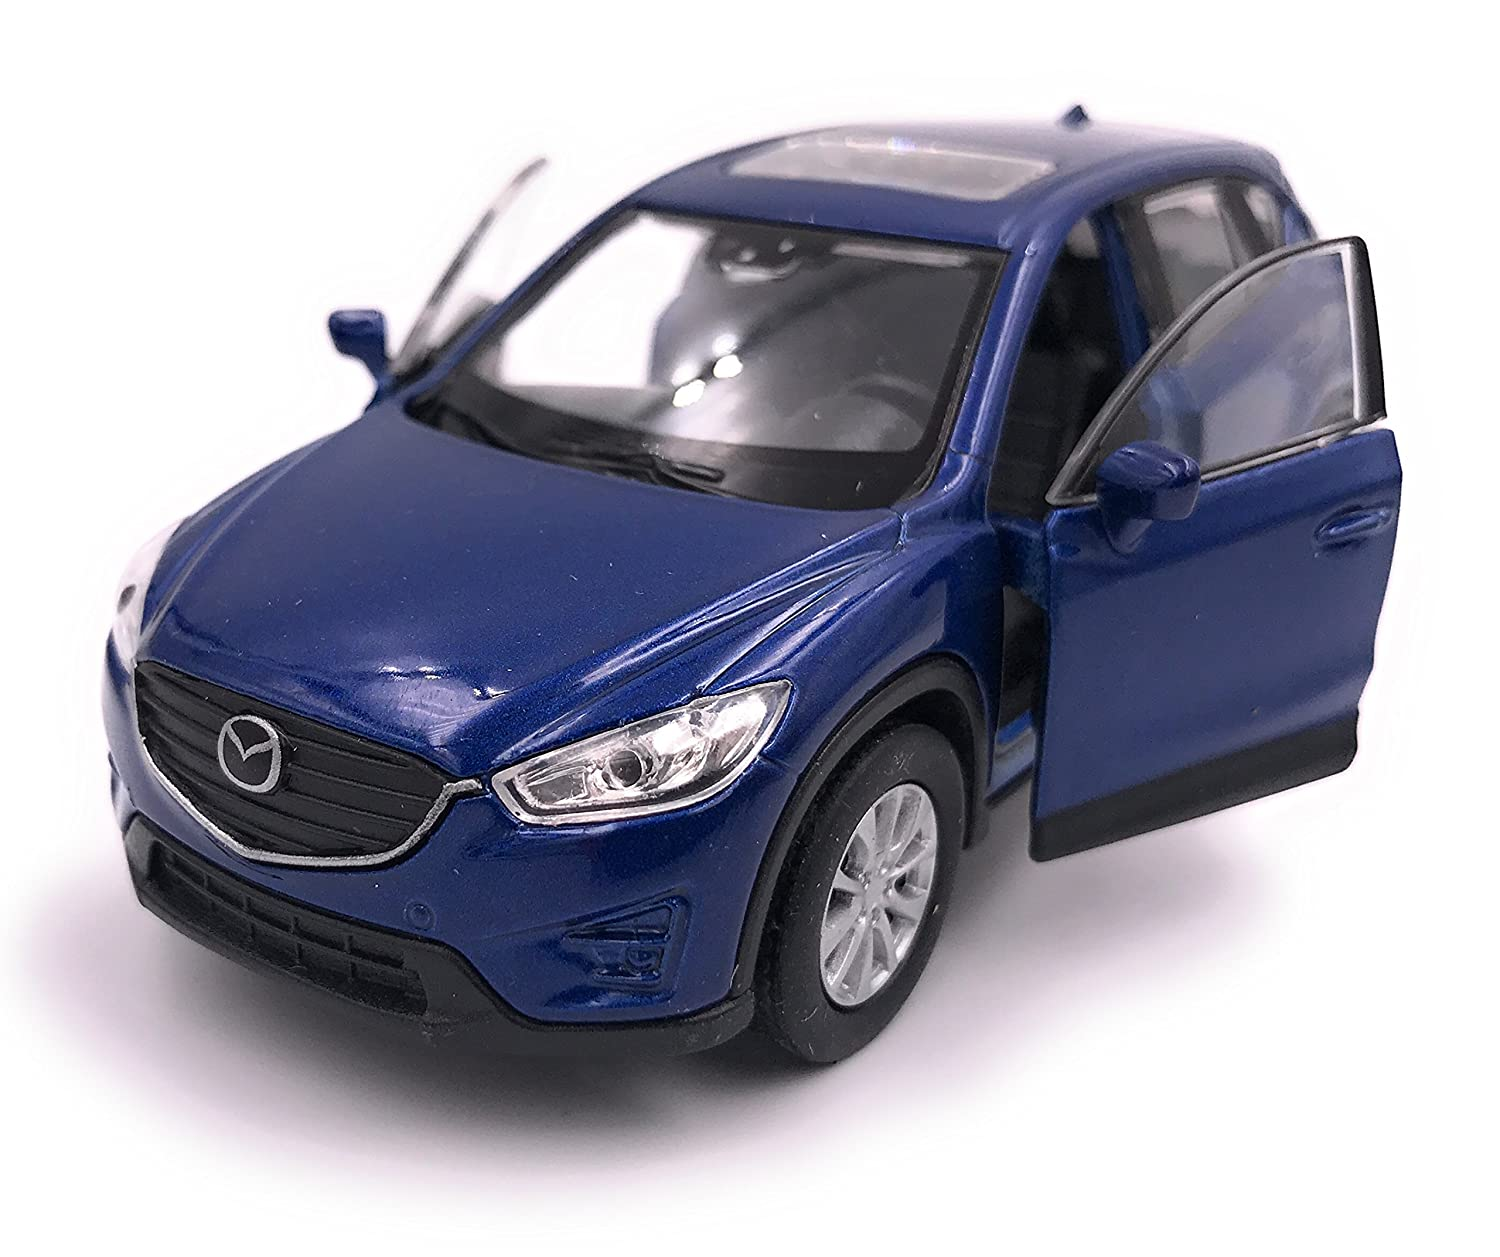 H-Customs Welly Mazda CX 5 Model Car Auto PRODOTTO CON LICENZA 1: 34-1: 39 Blu hcmmazdacx5blau2605